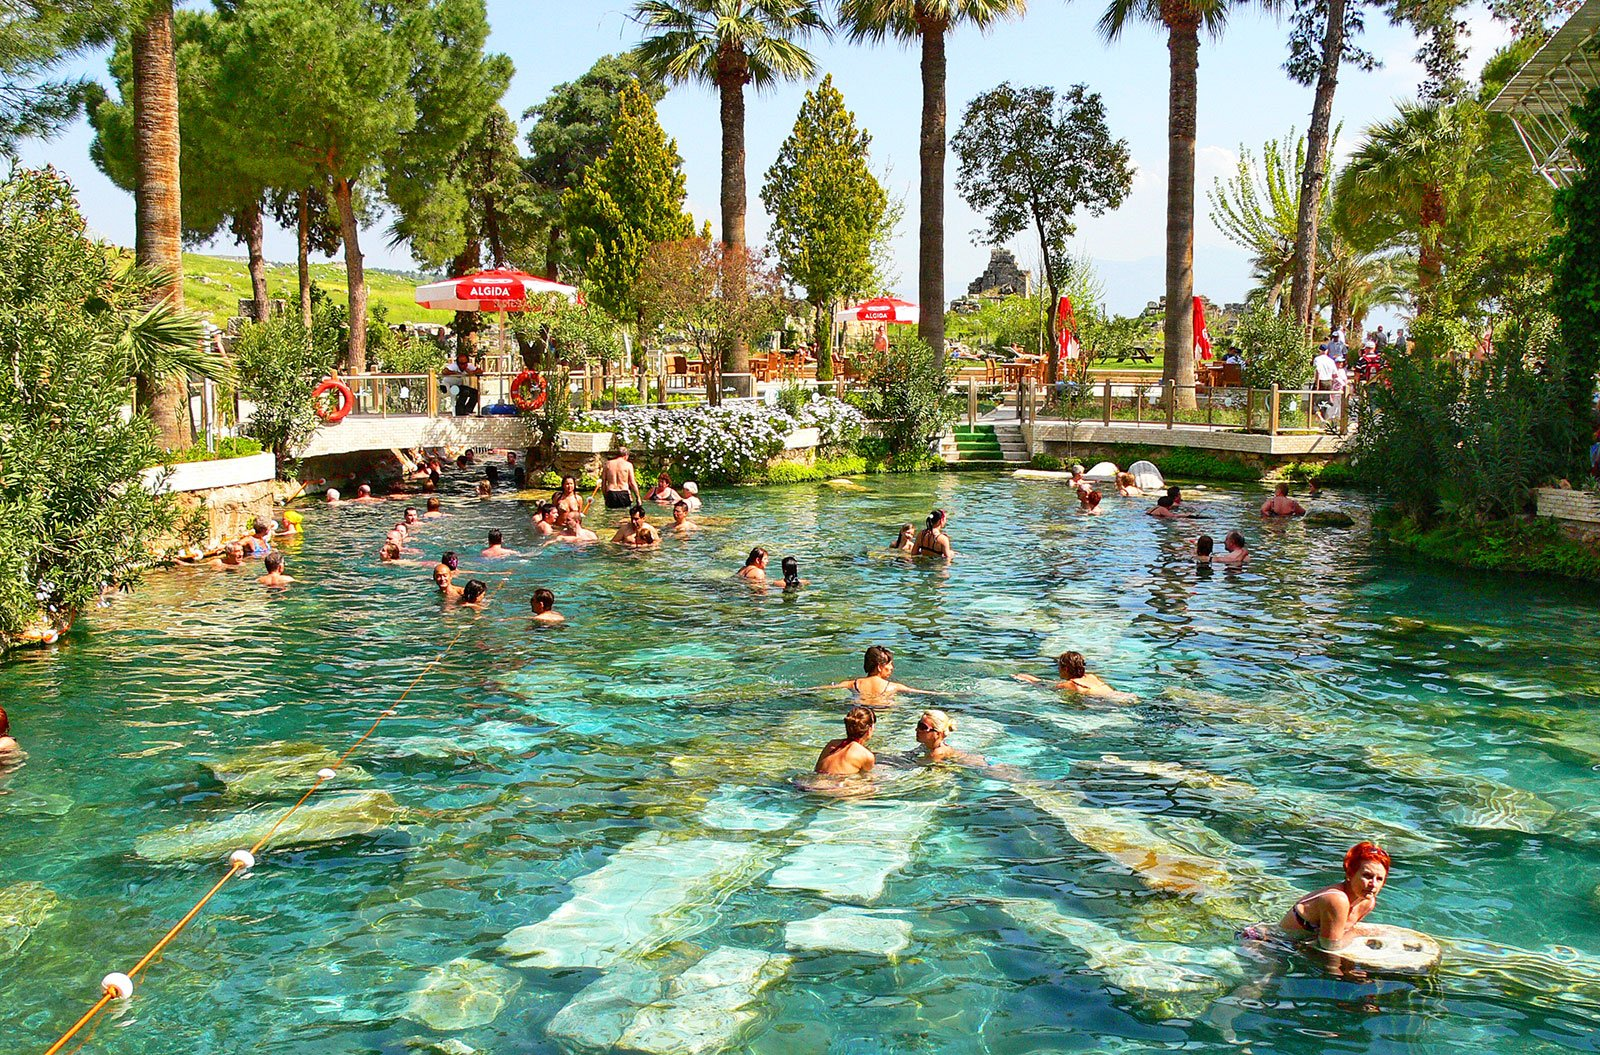 How to take a bath in Cleopatra's Antique Pool in Marmaris